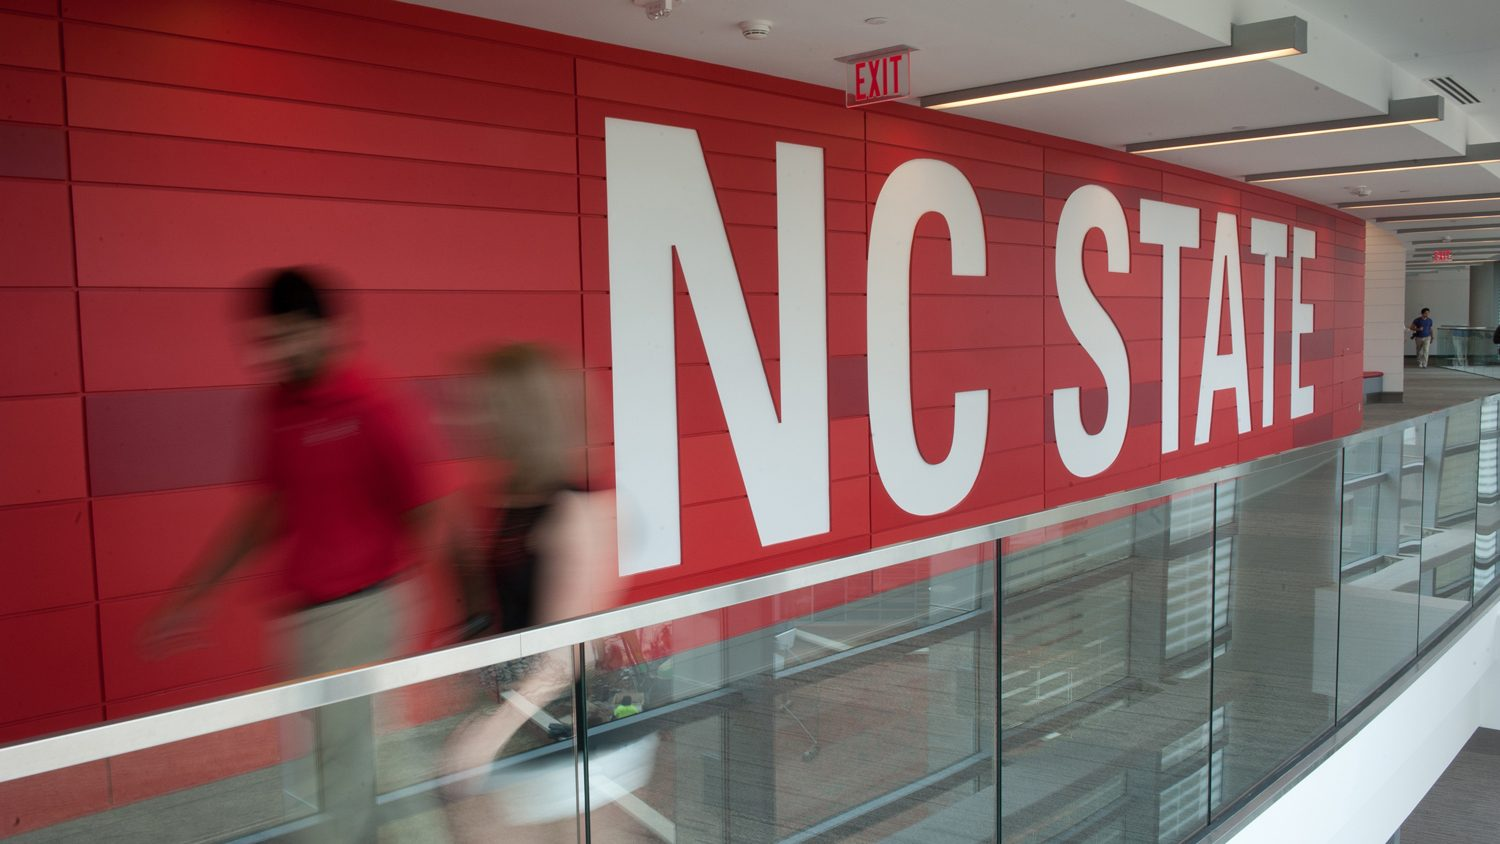 NC State Red Wall